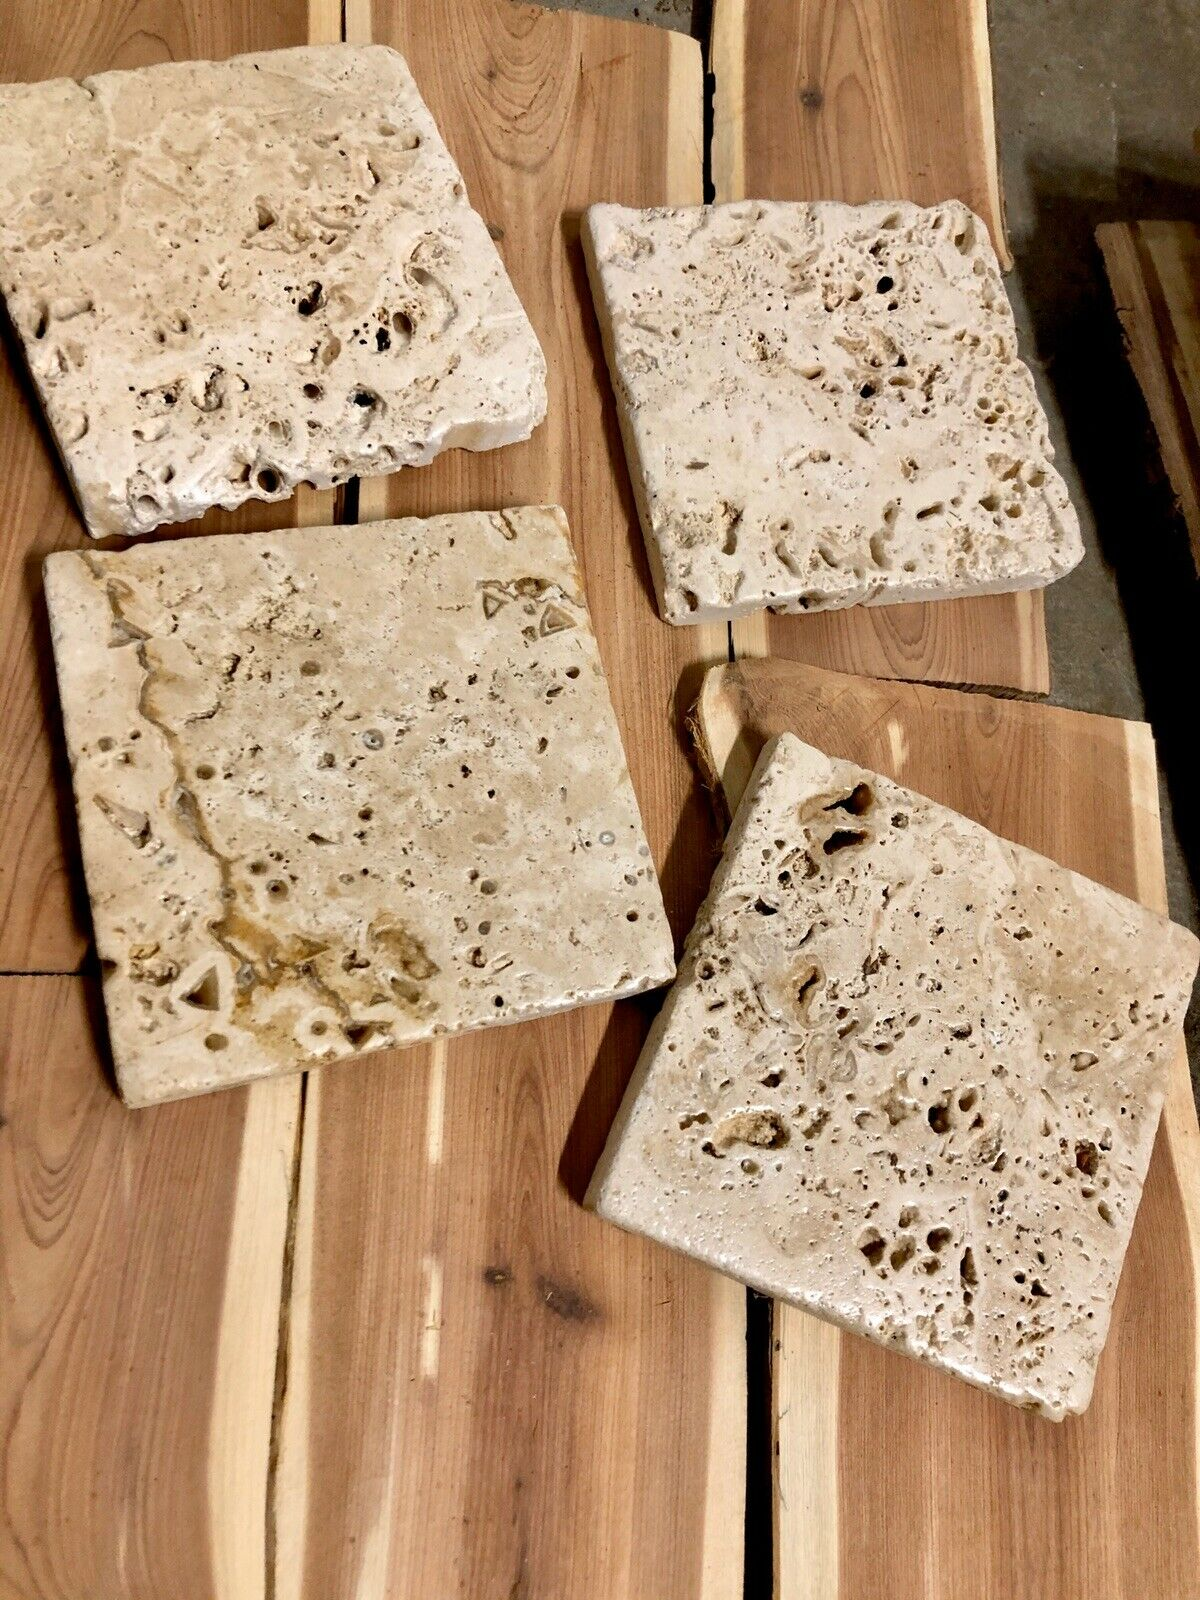 TC#7F FOUR NATURAL STONE ABSORBENT TUMBLED TRAVERTINE COASTERS FREE SHIPPING 4